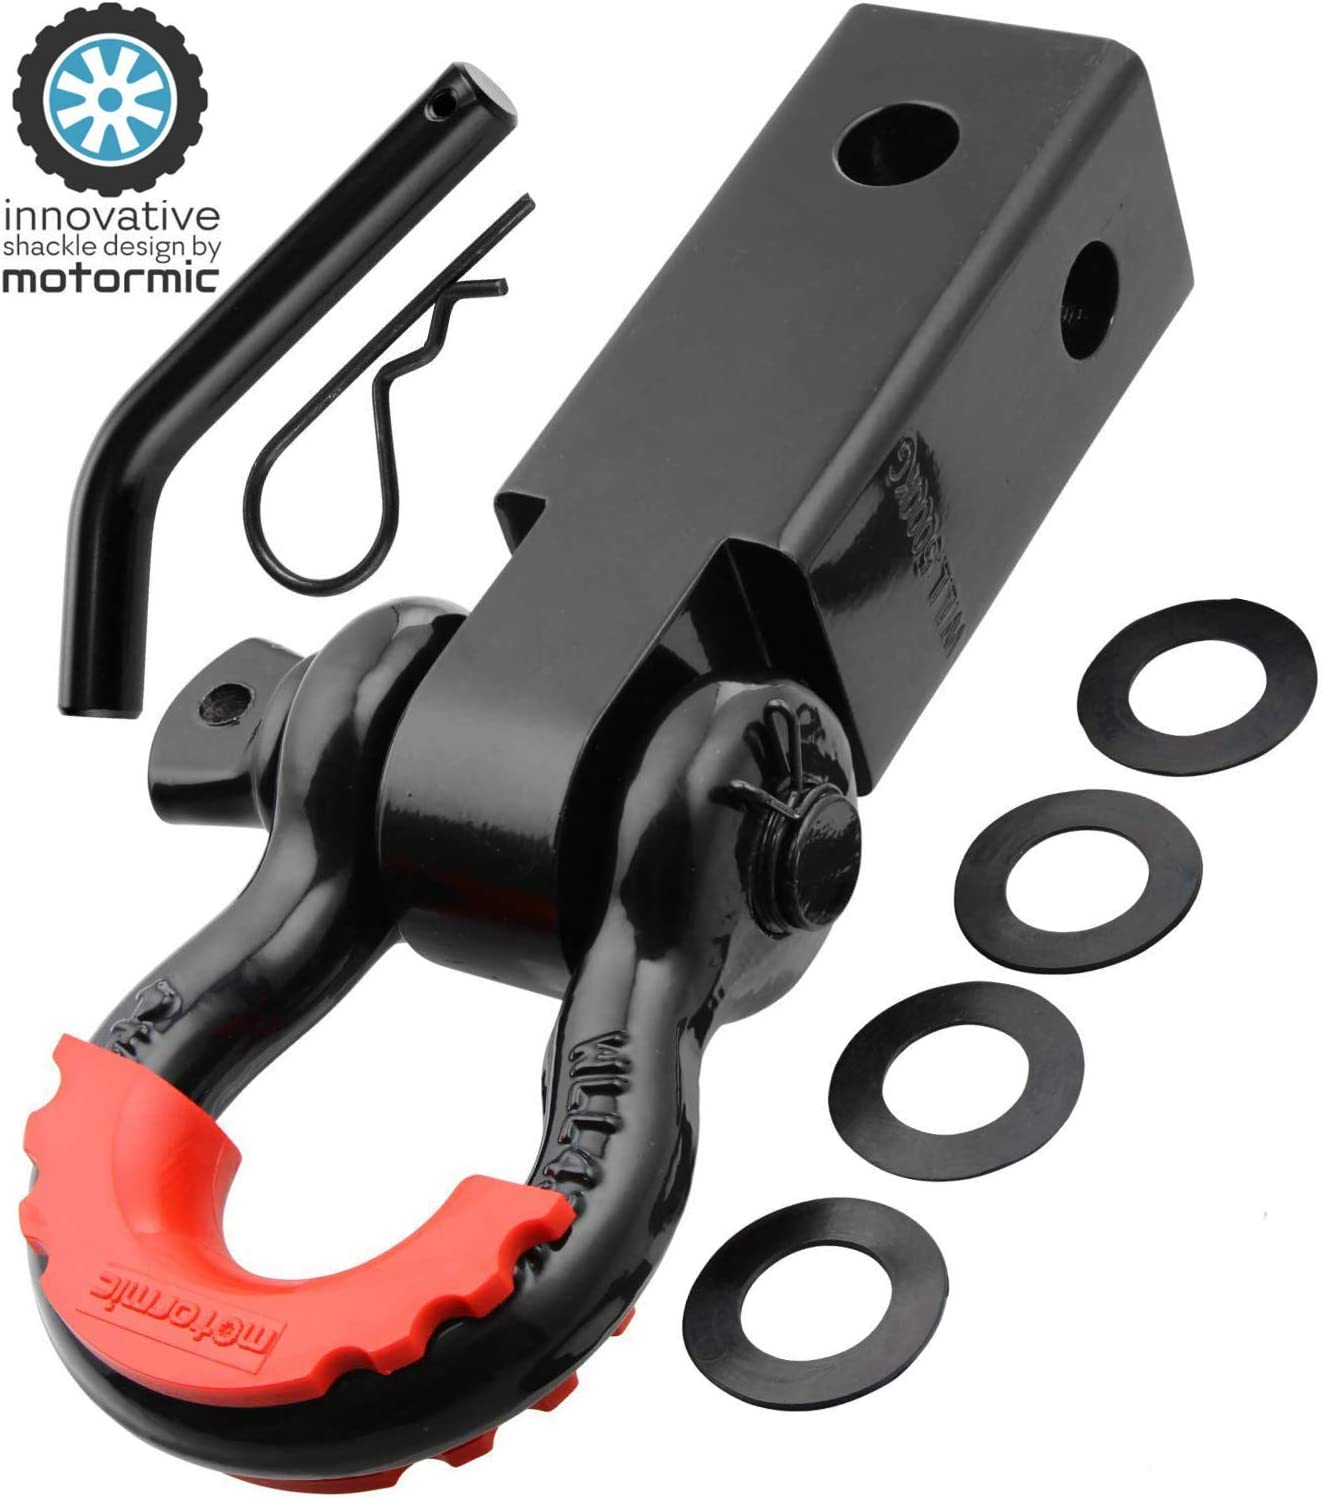 EAG Shackle Hitch Reciever D-Ring with Black 3//4 inch Shackle for 2 inch Receivers Includes Red D-Ring Isolators and Hitch Pin